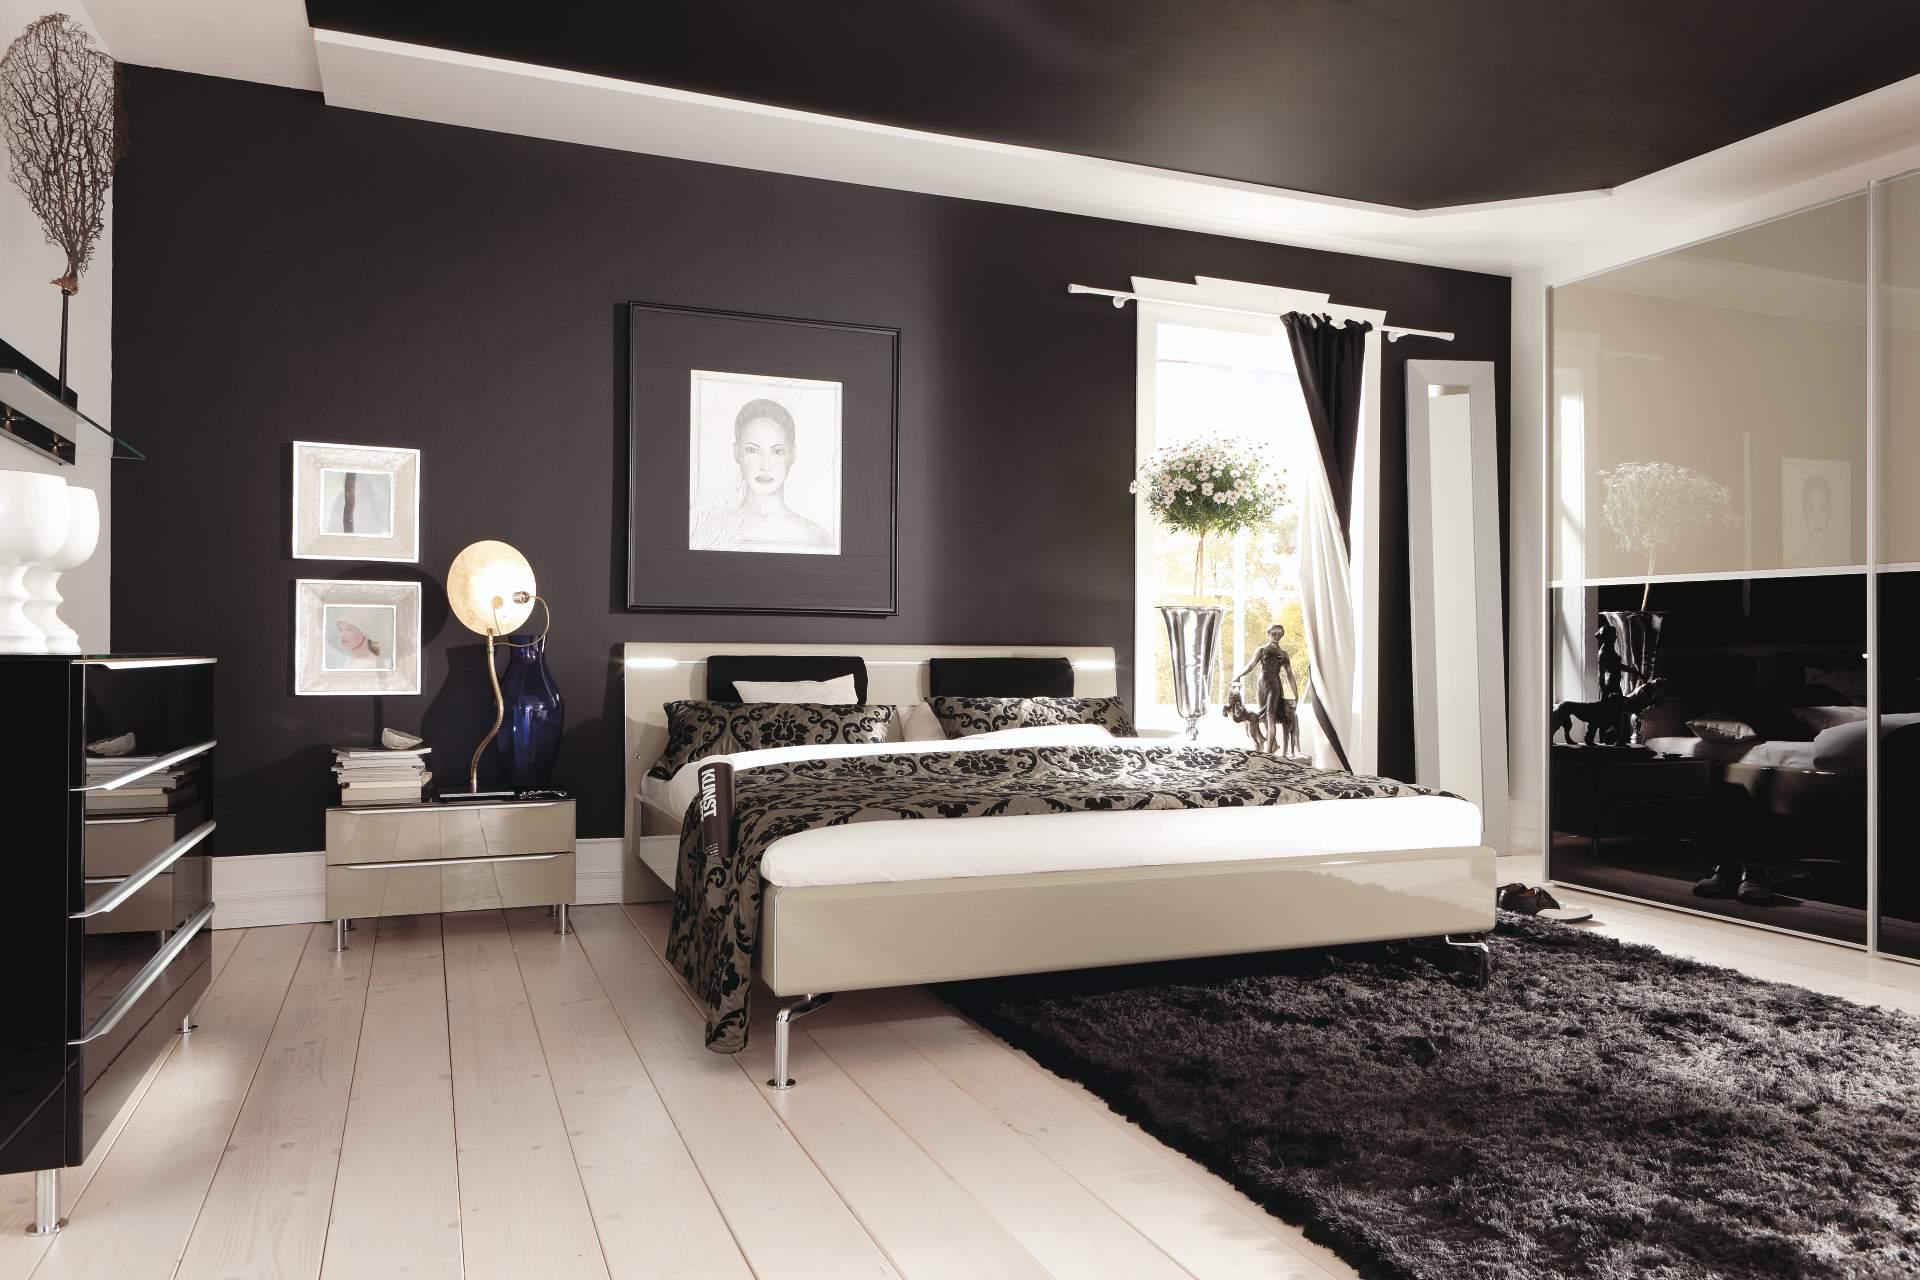 Dazzling Bedroom Contemporary Nightstands